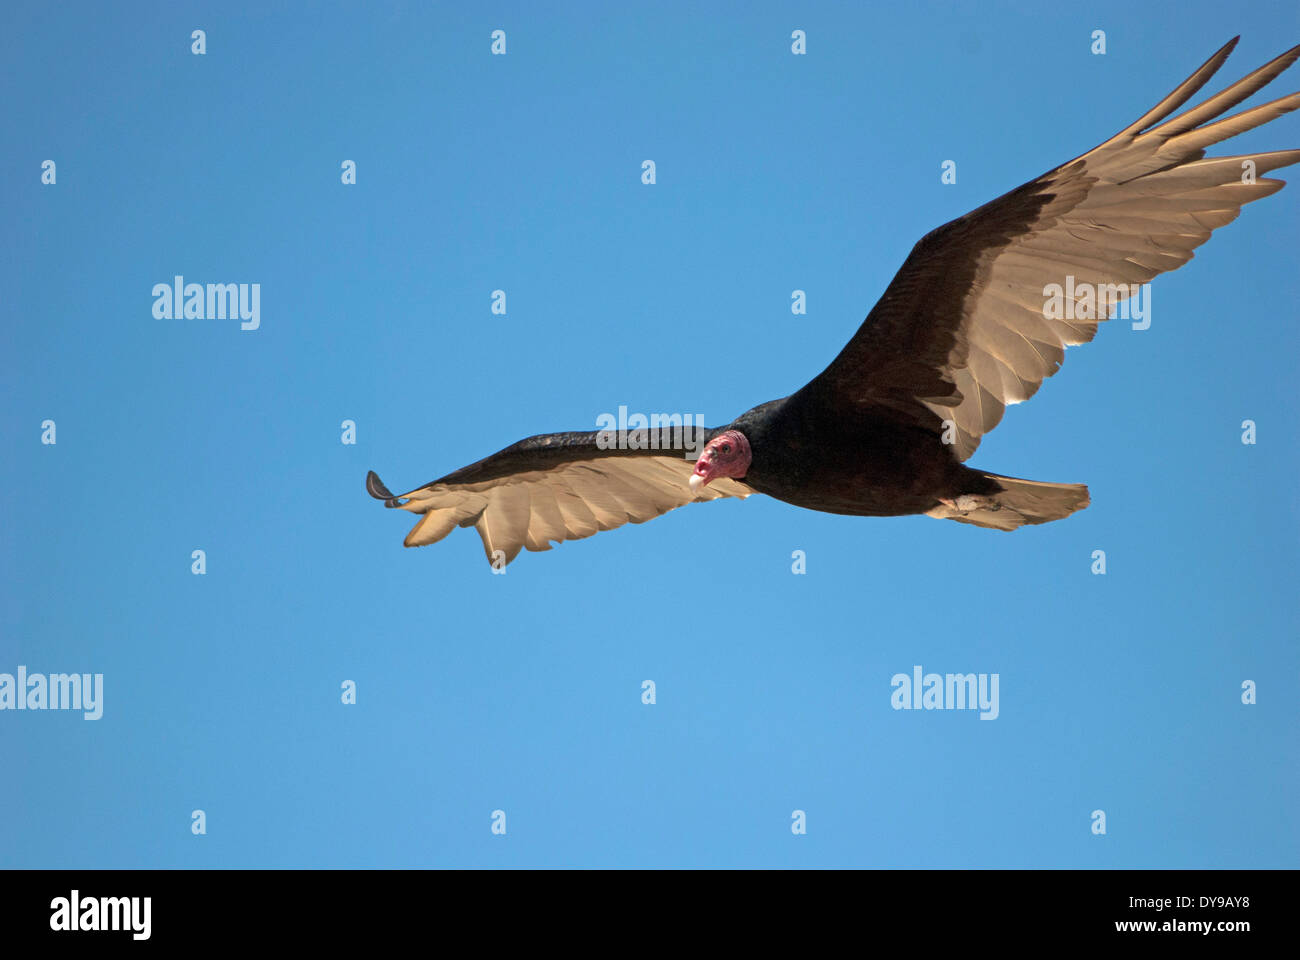 Turkey Vulture (Cathartes aura) flying in the sky - Stock Image